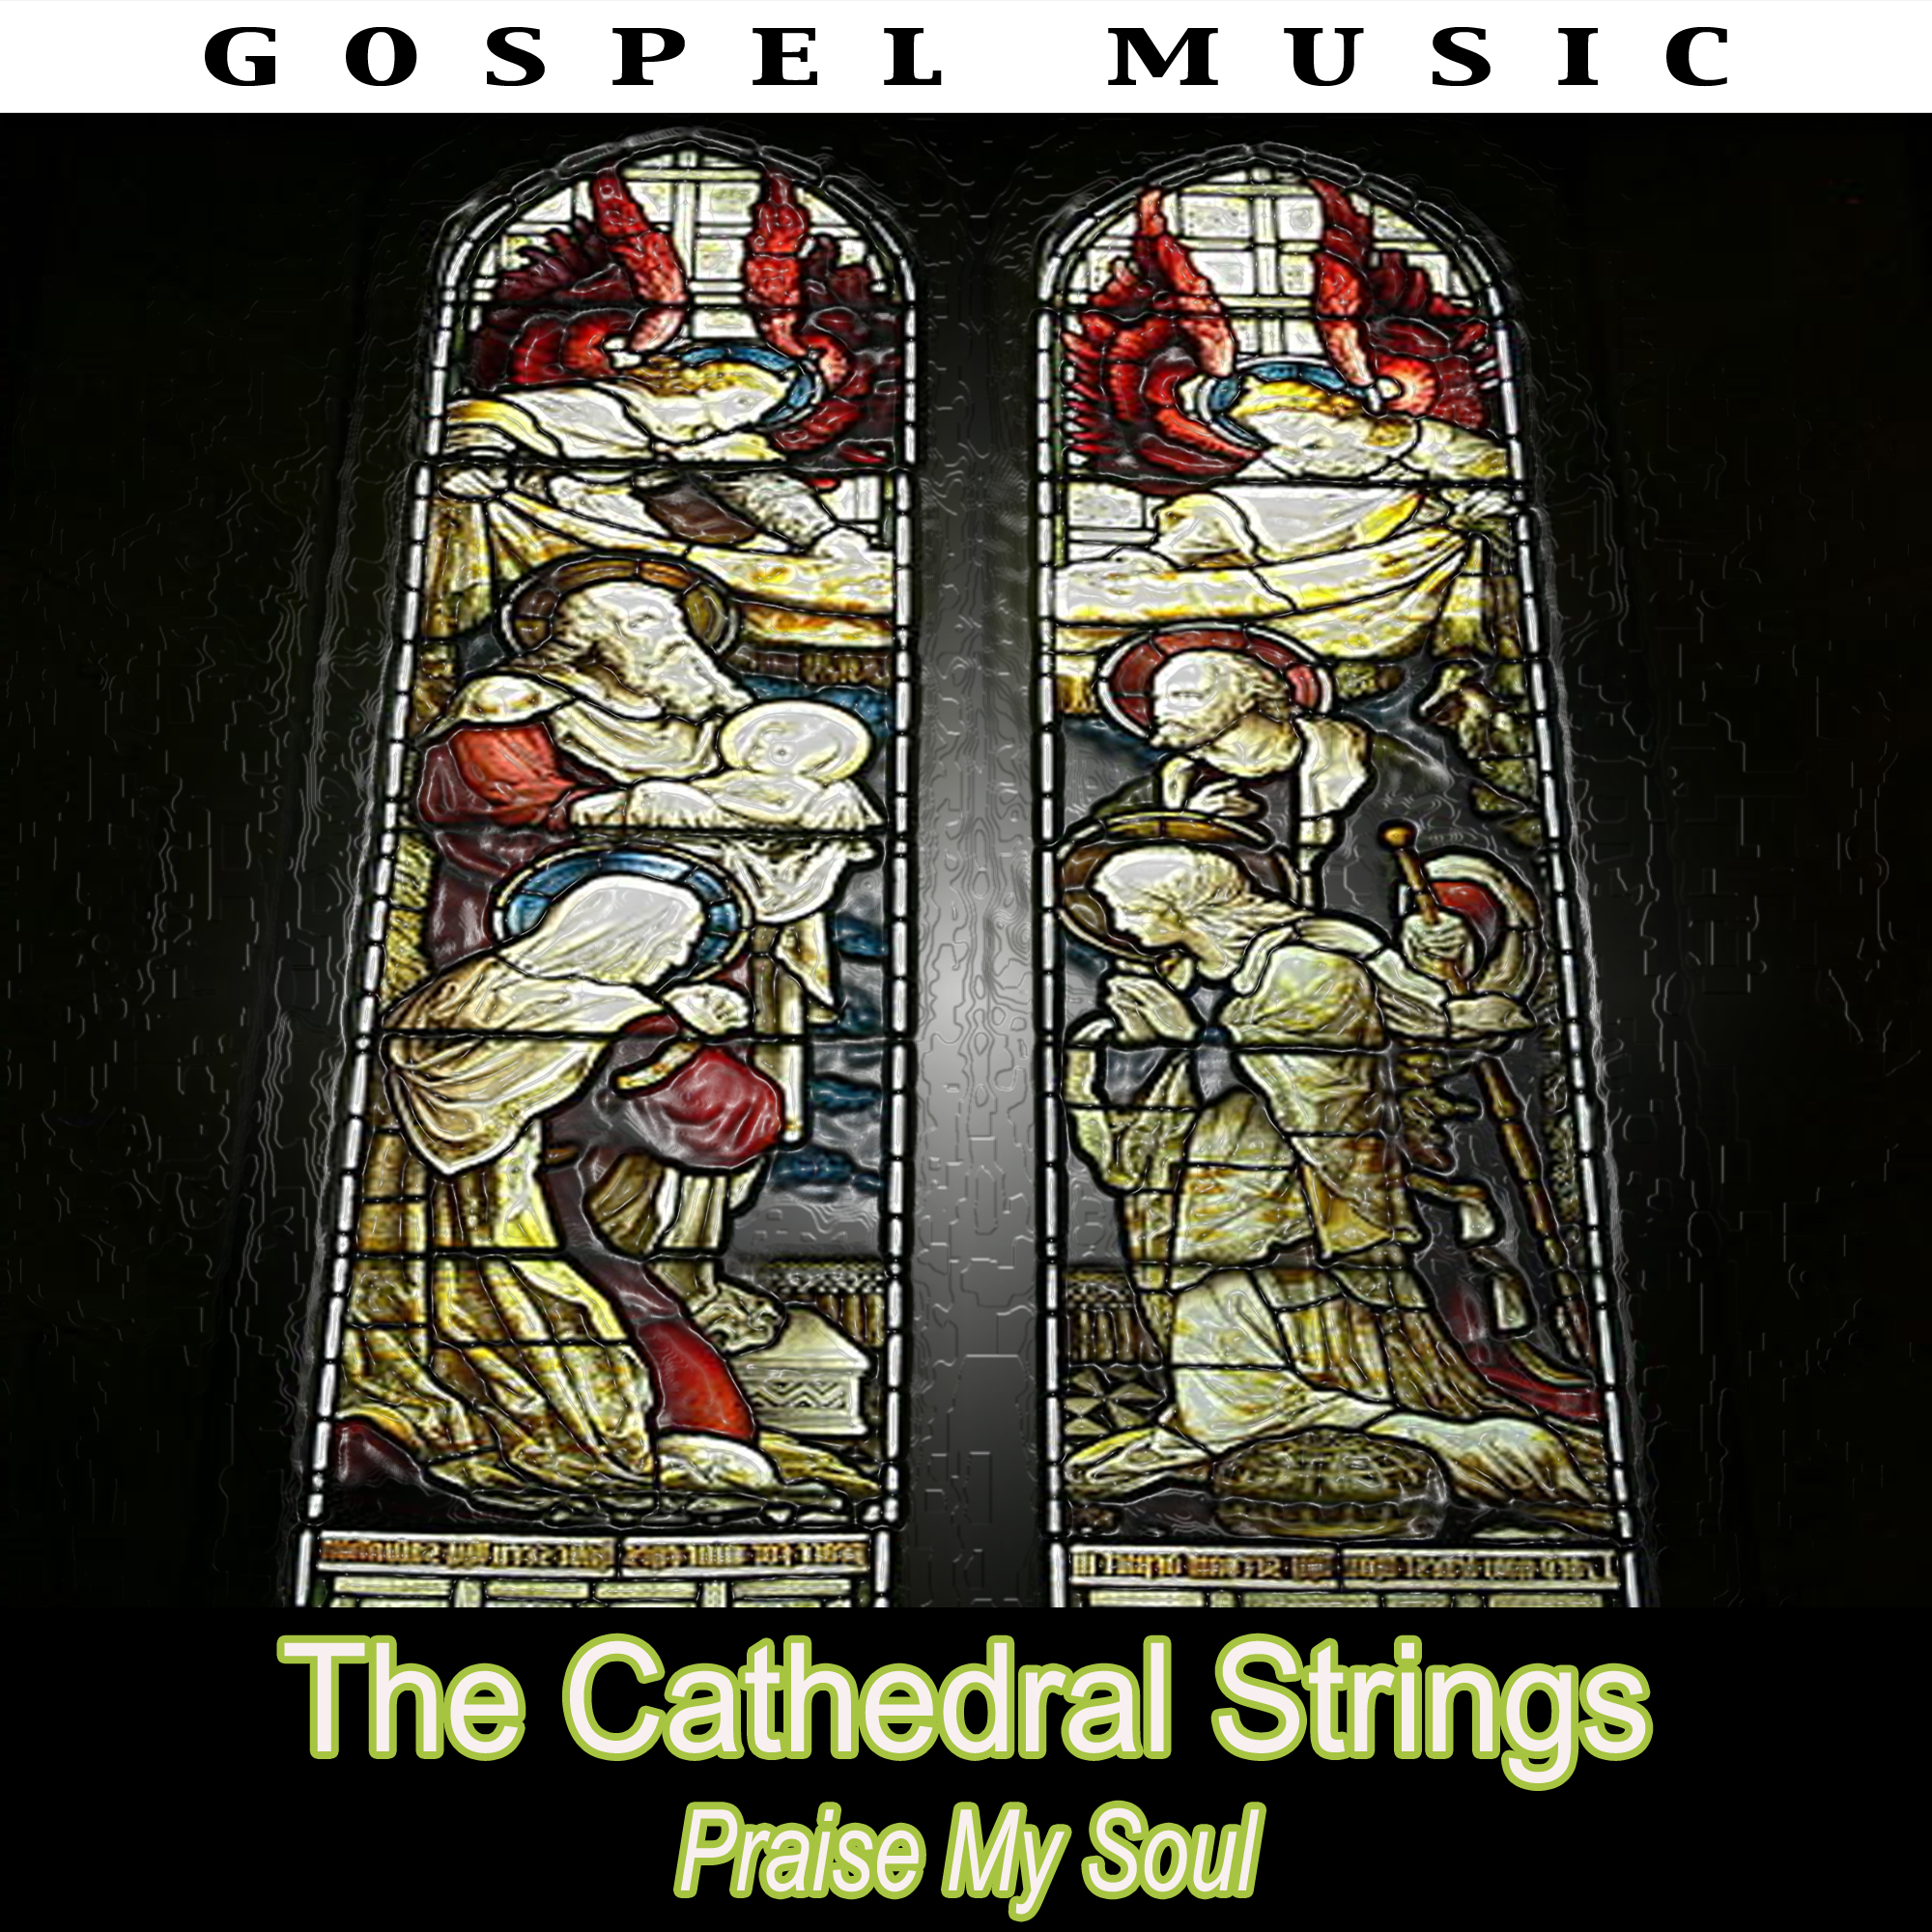 The Cathedral Strings - Praise My Soul